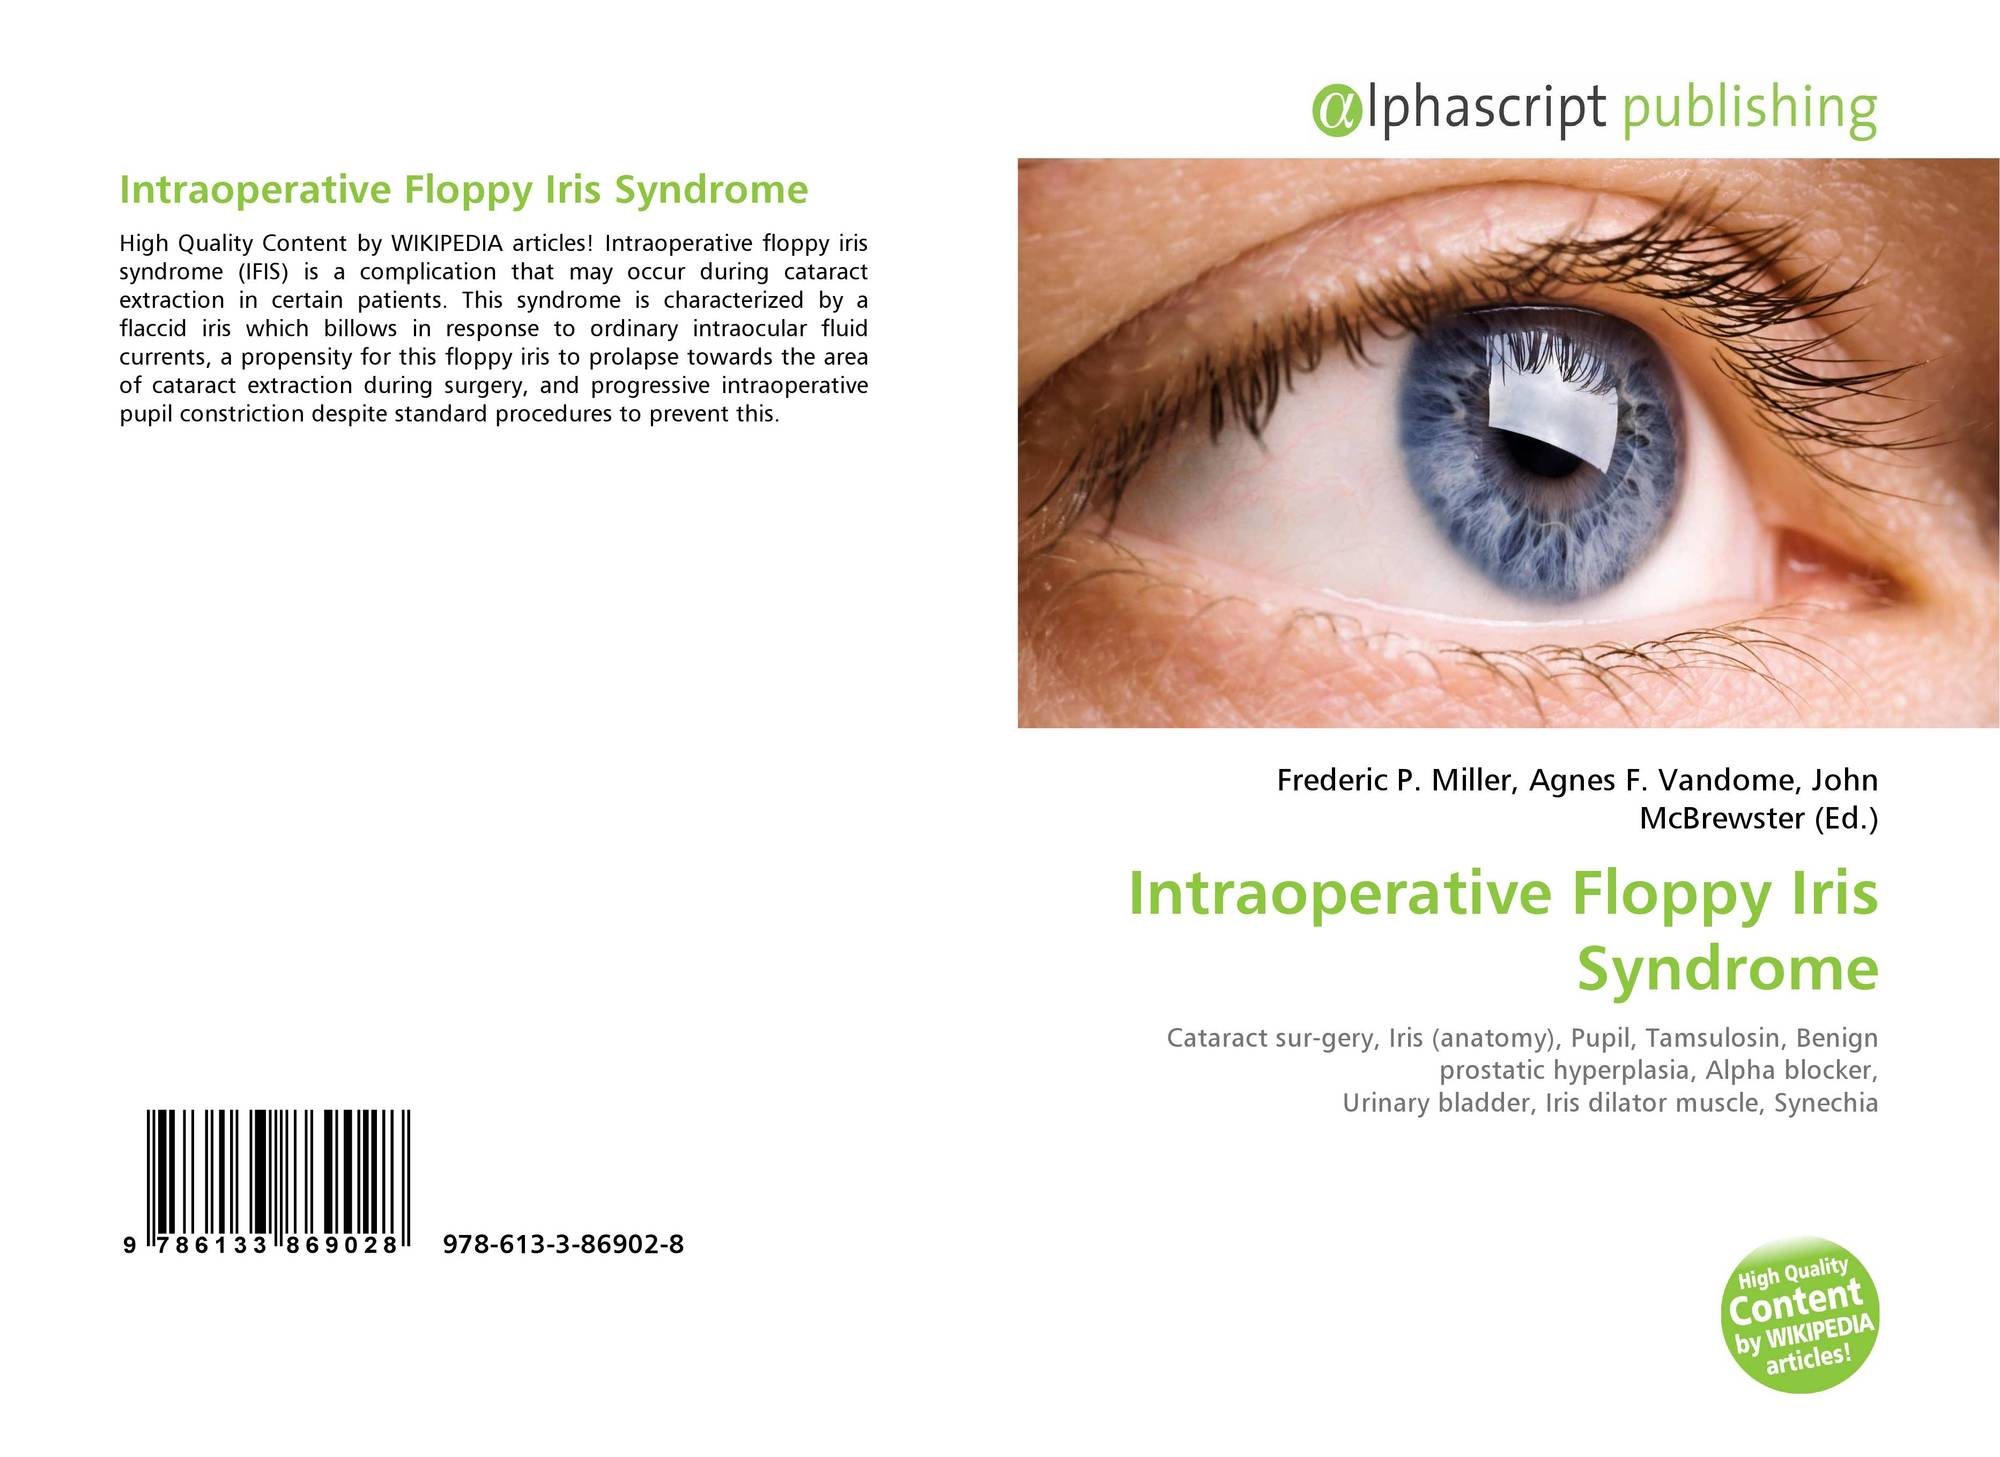 Intraoperative Floppy Iris Syndrome, 978-613-3-86902-8, 613386902X ...